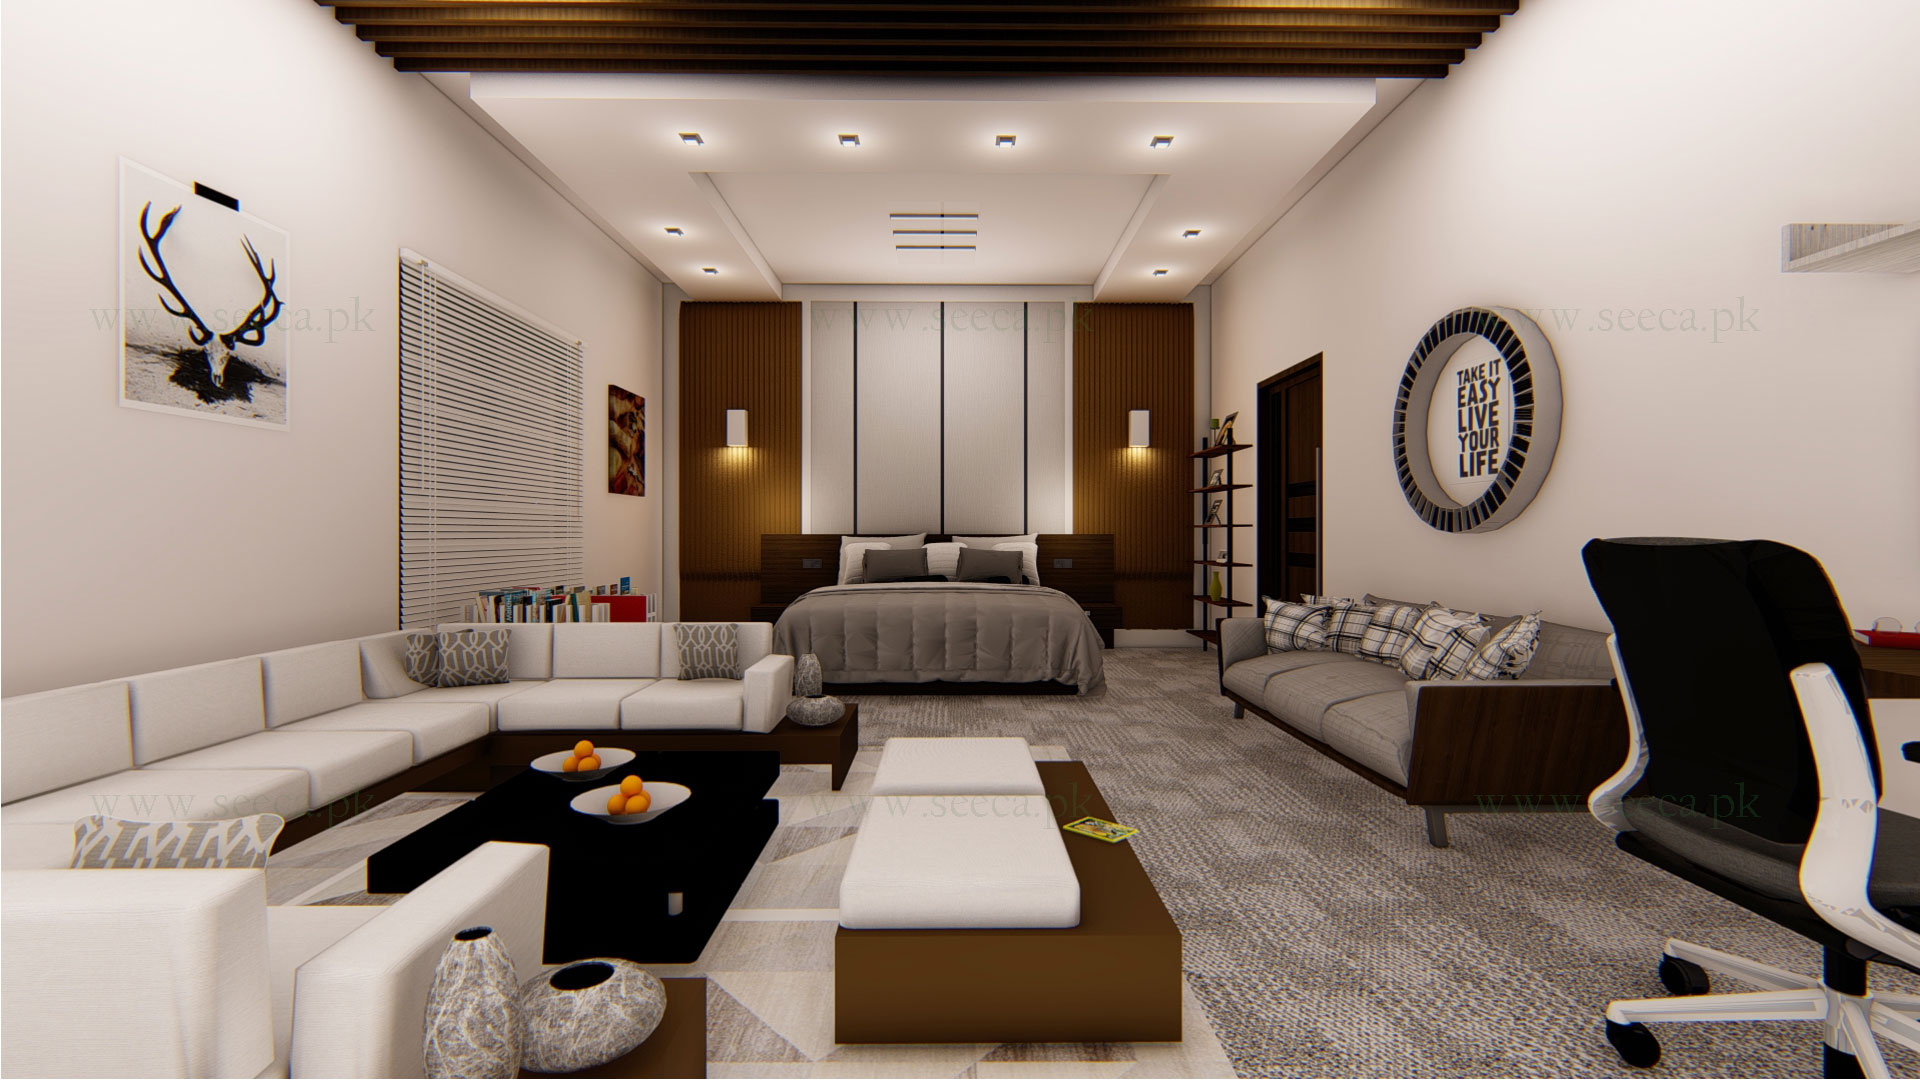 Services involved in interior designing